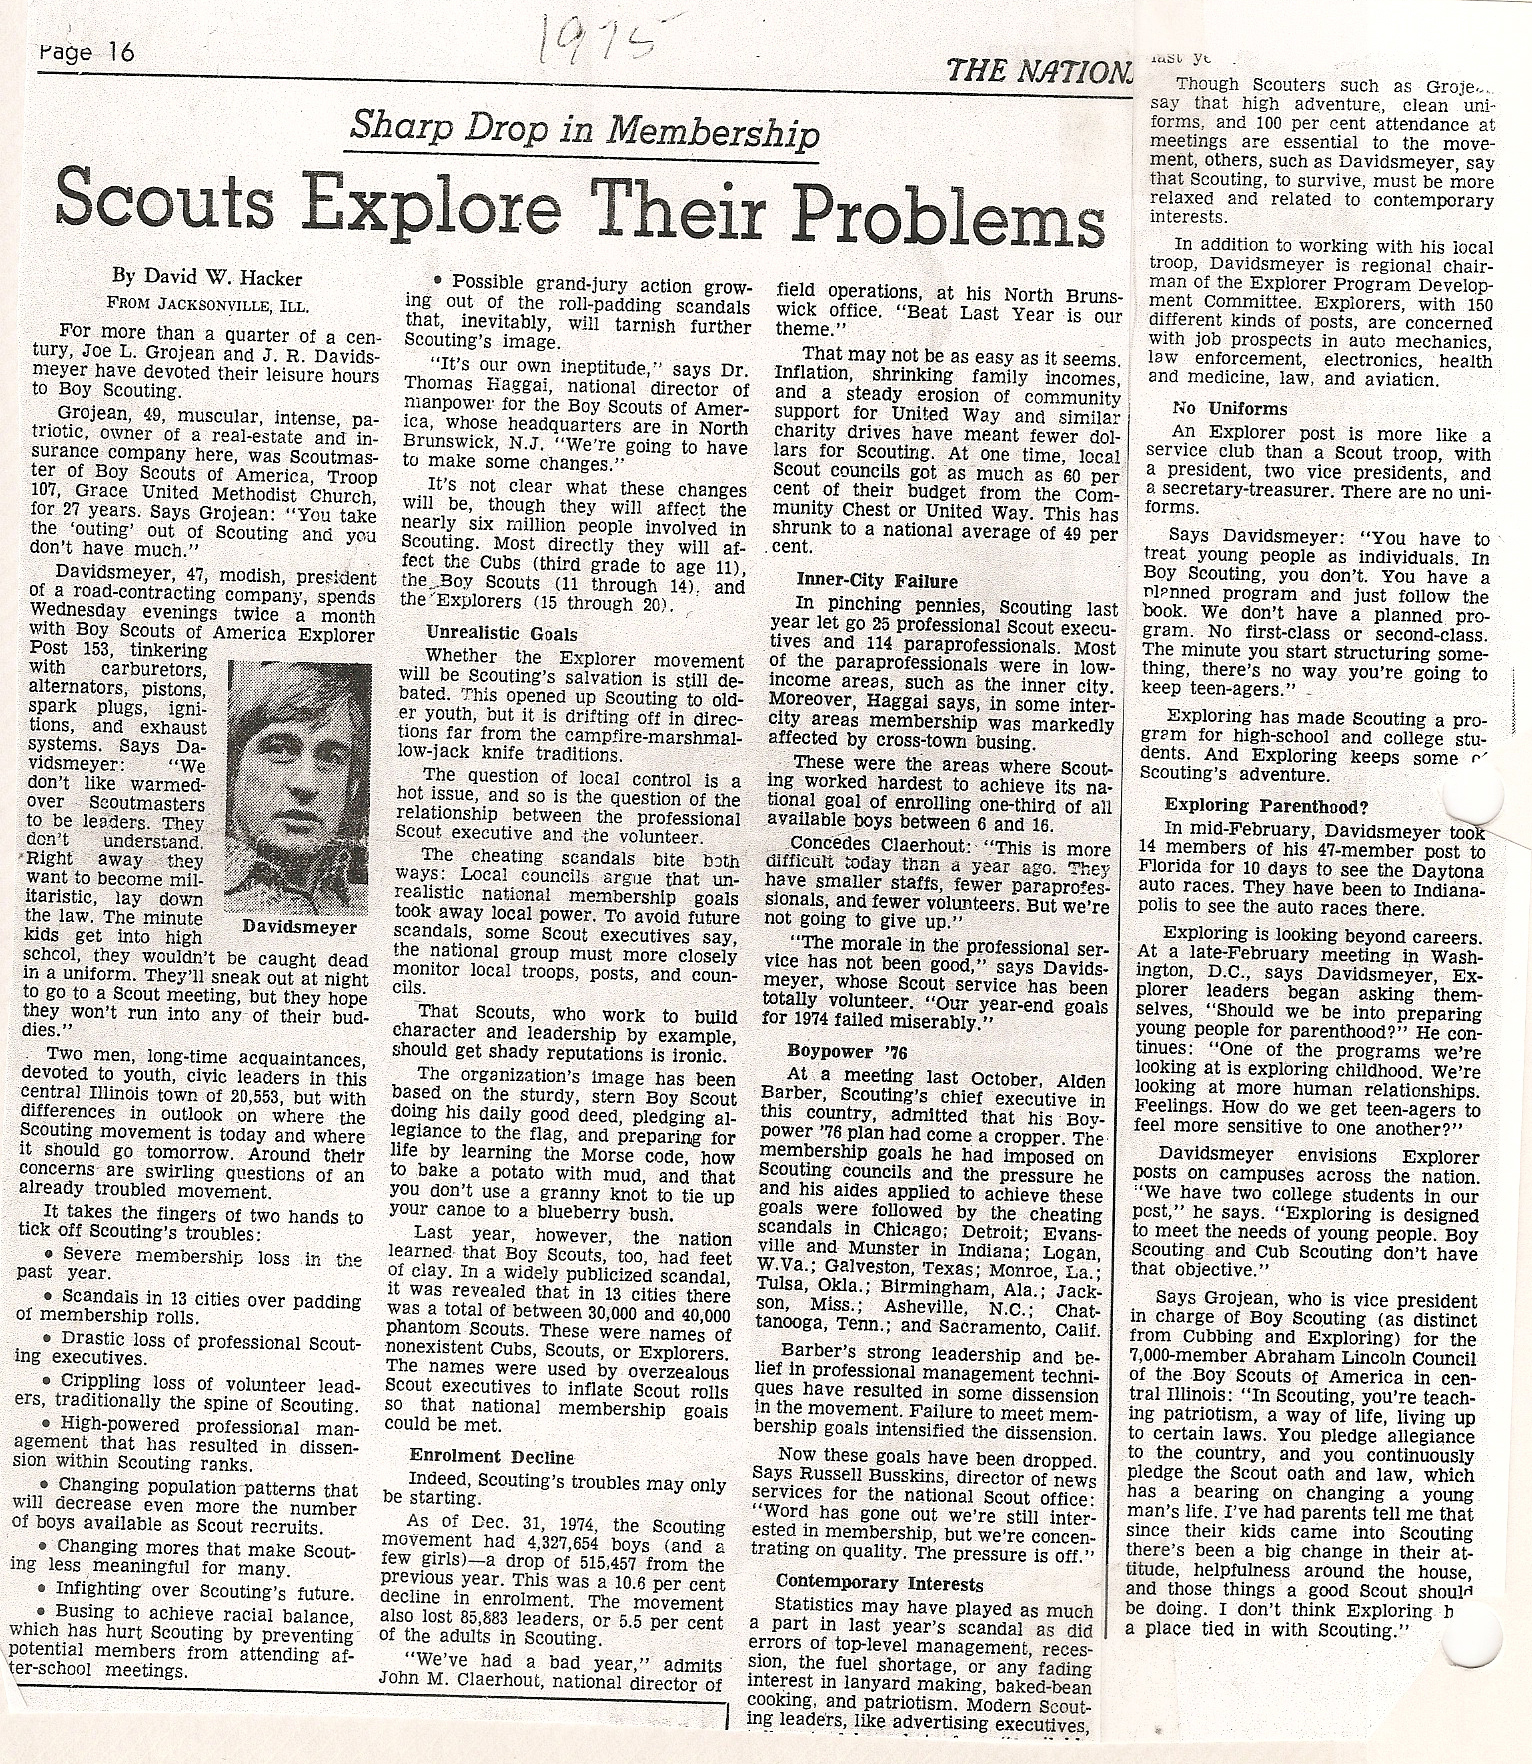 1975 Scout Article